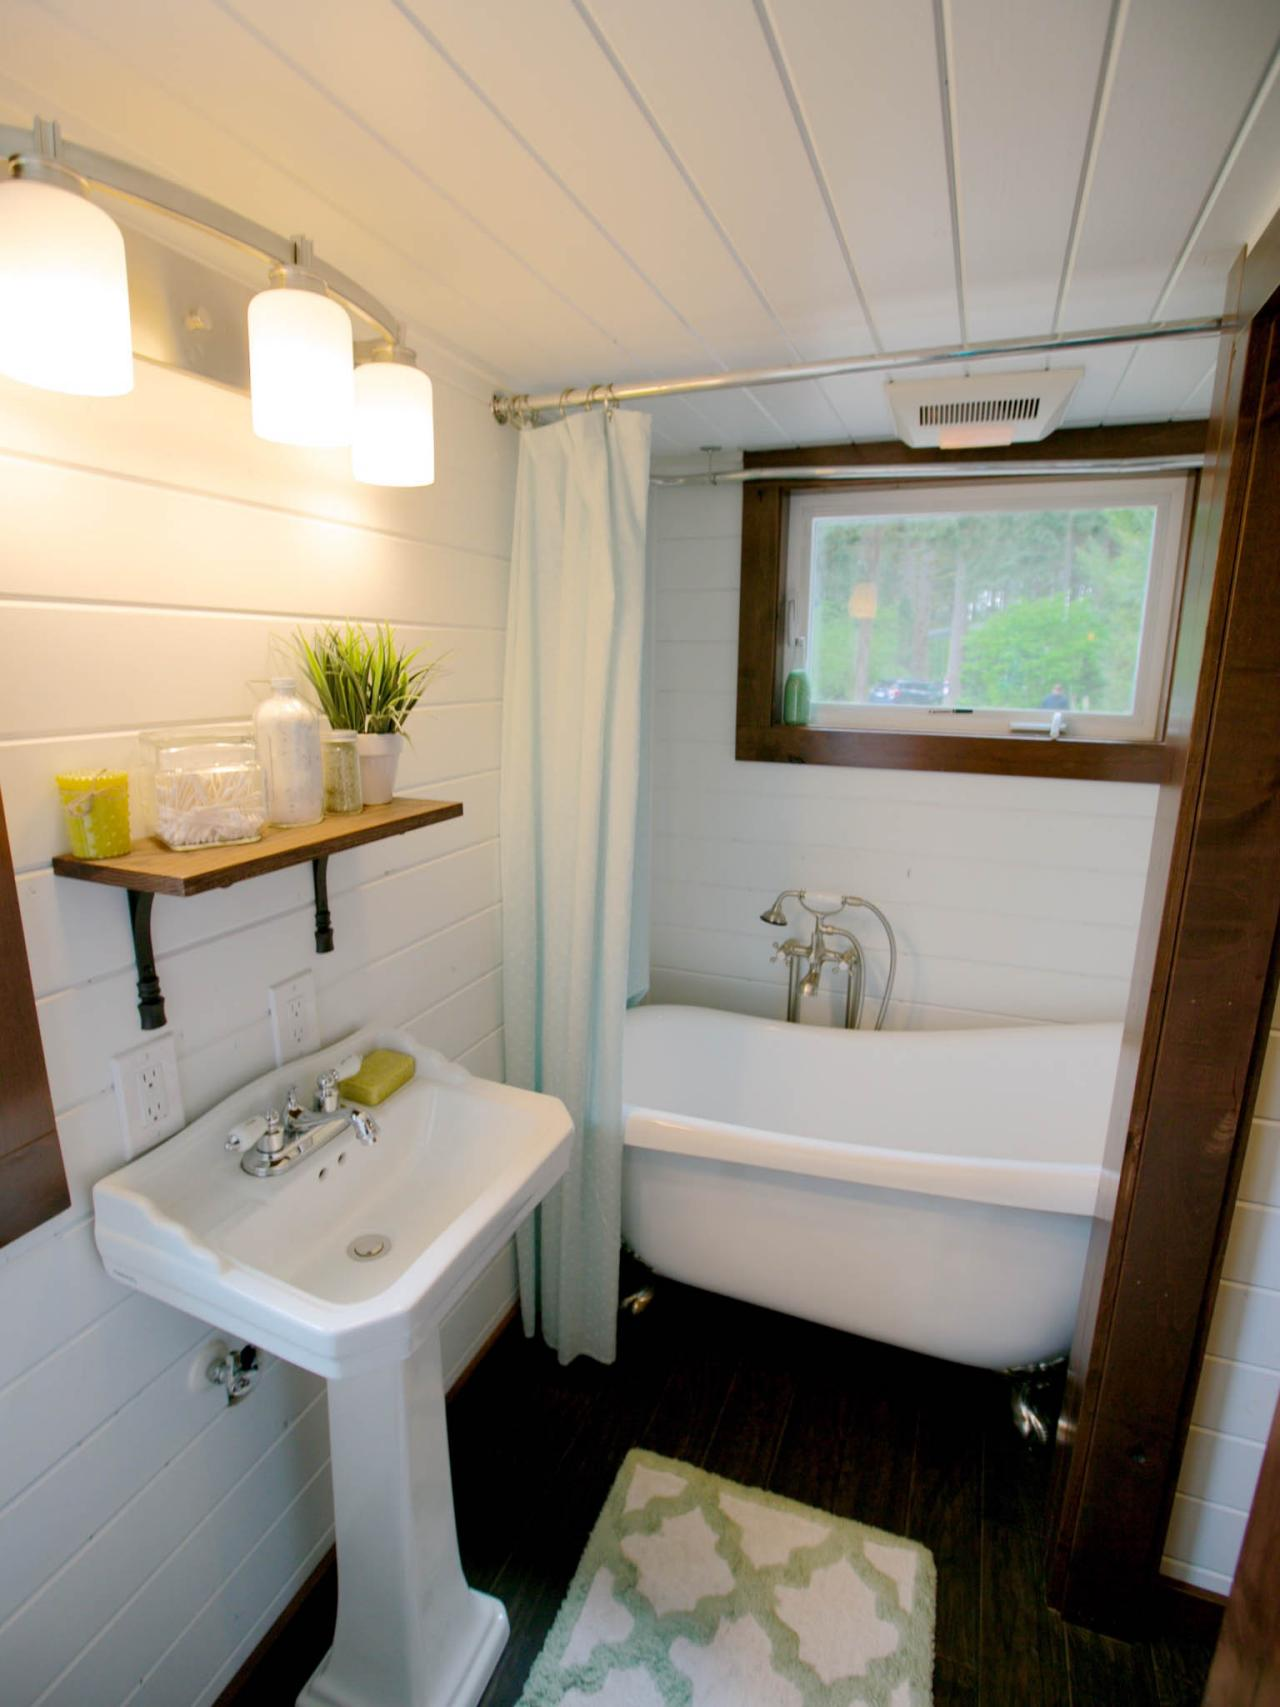 Bathroom Design For Tiny House 8 tiny house bathrooms packed with style | hgtv's decorating